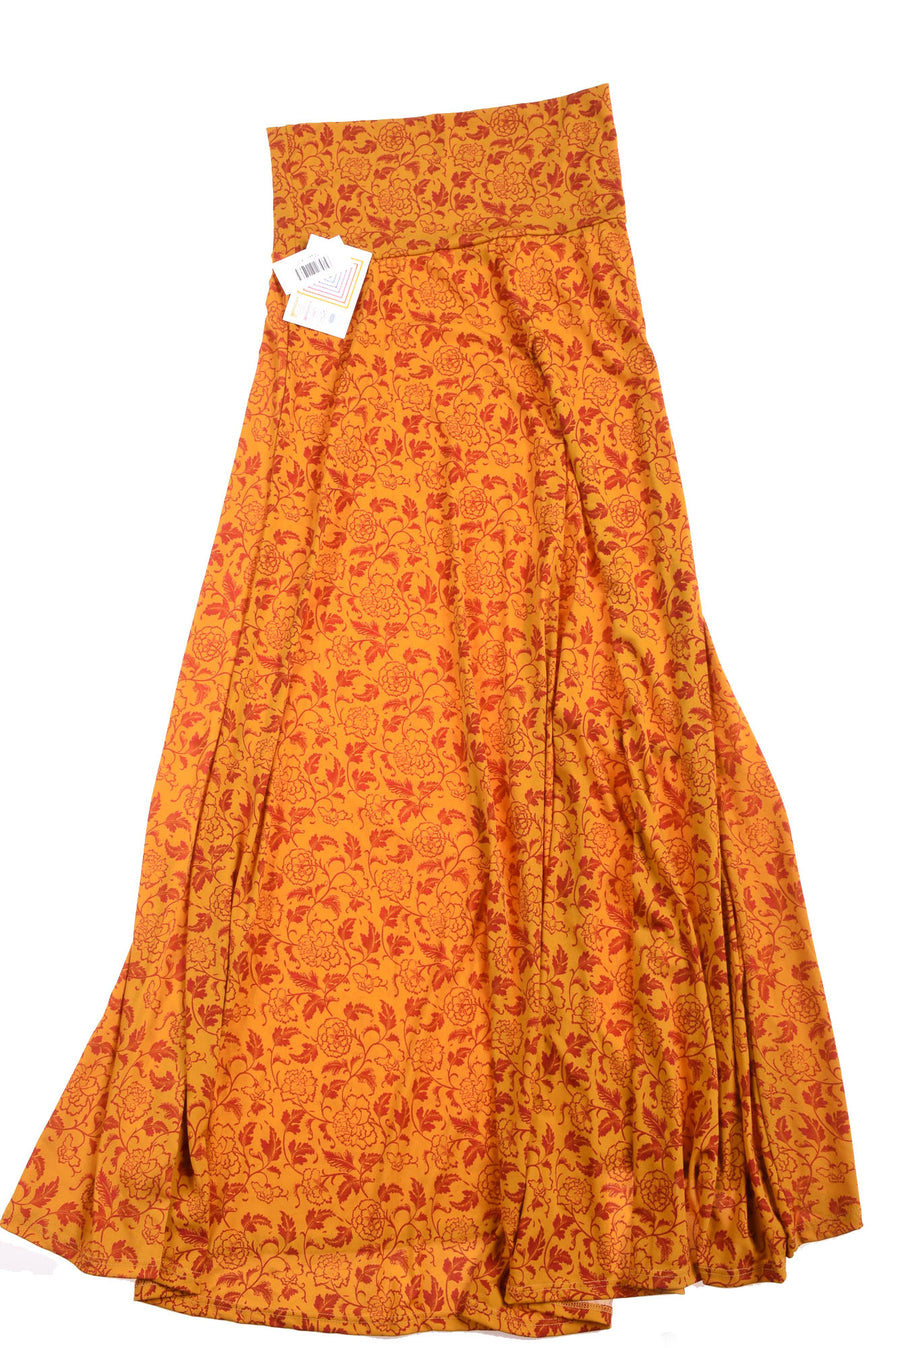 NEW Lula Roe Women's Skirt X-Small Yellow & Red